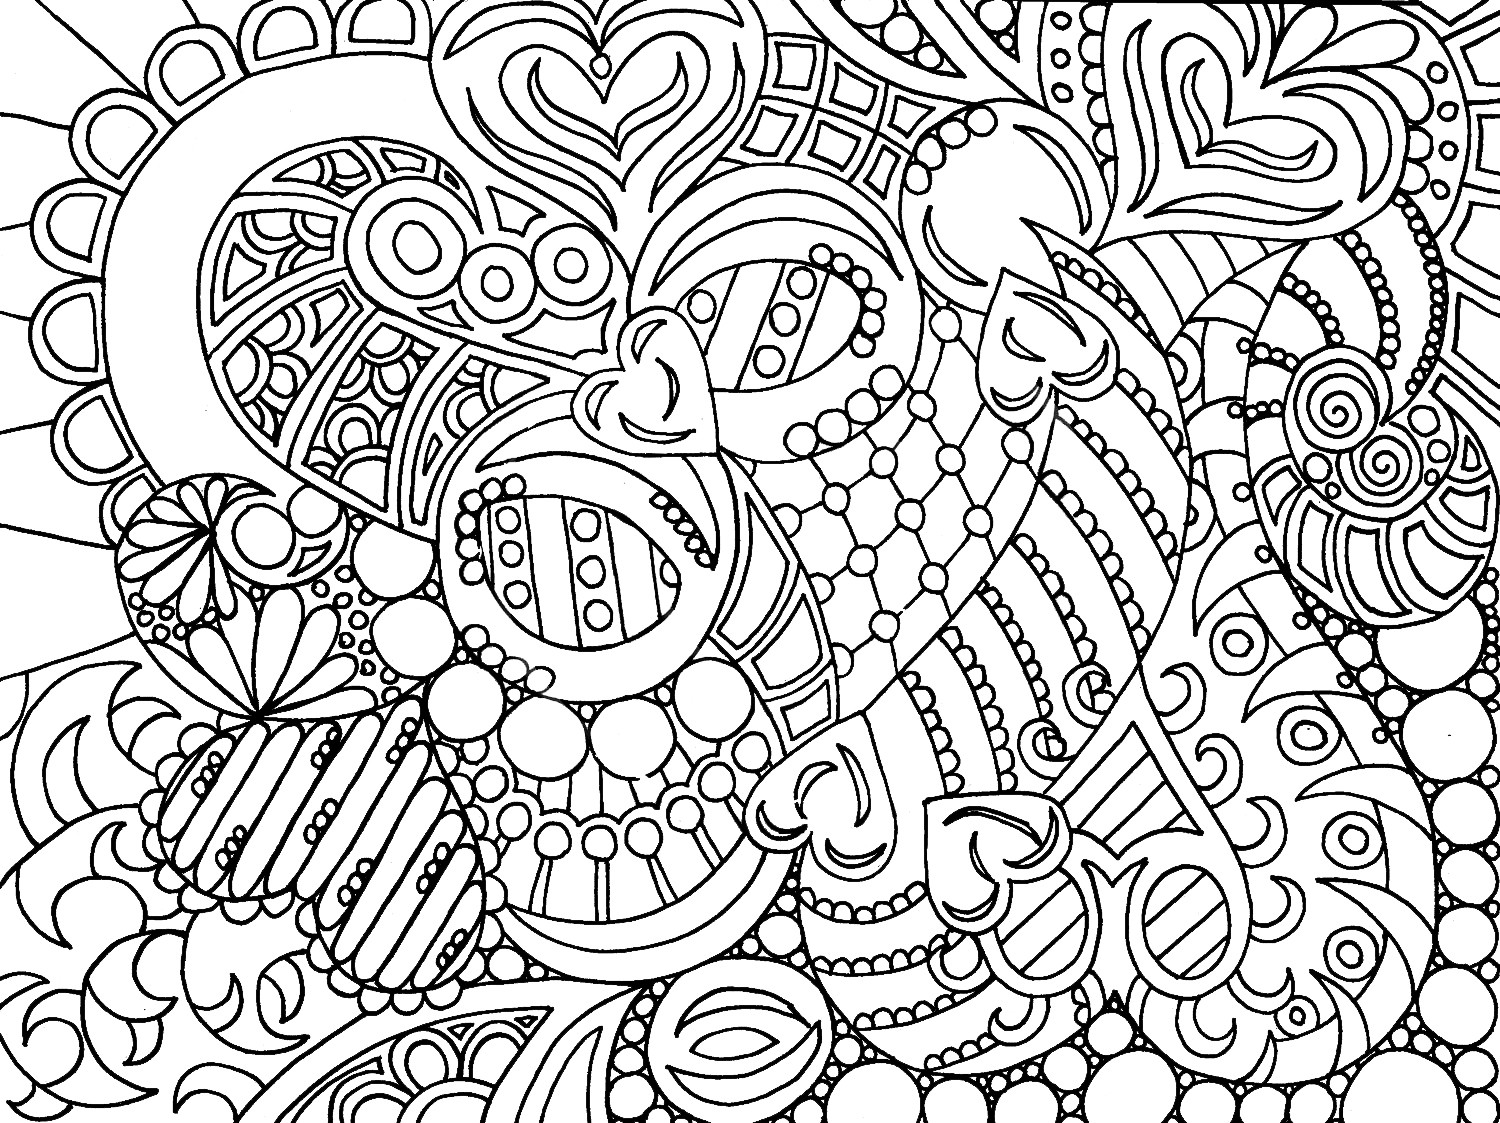 Best ideas about Free Coloring Sheets For Adults . Save or Pin free coloring pages for adults Now.